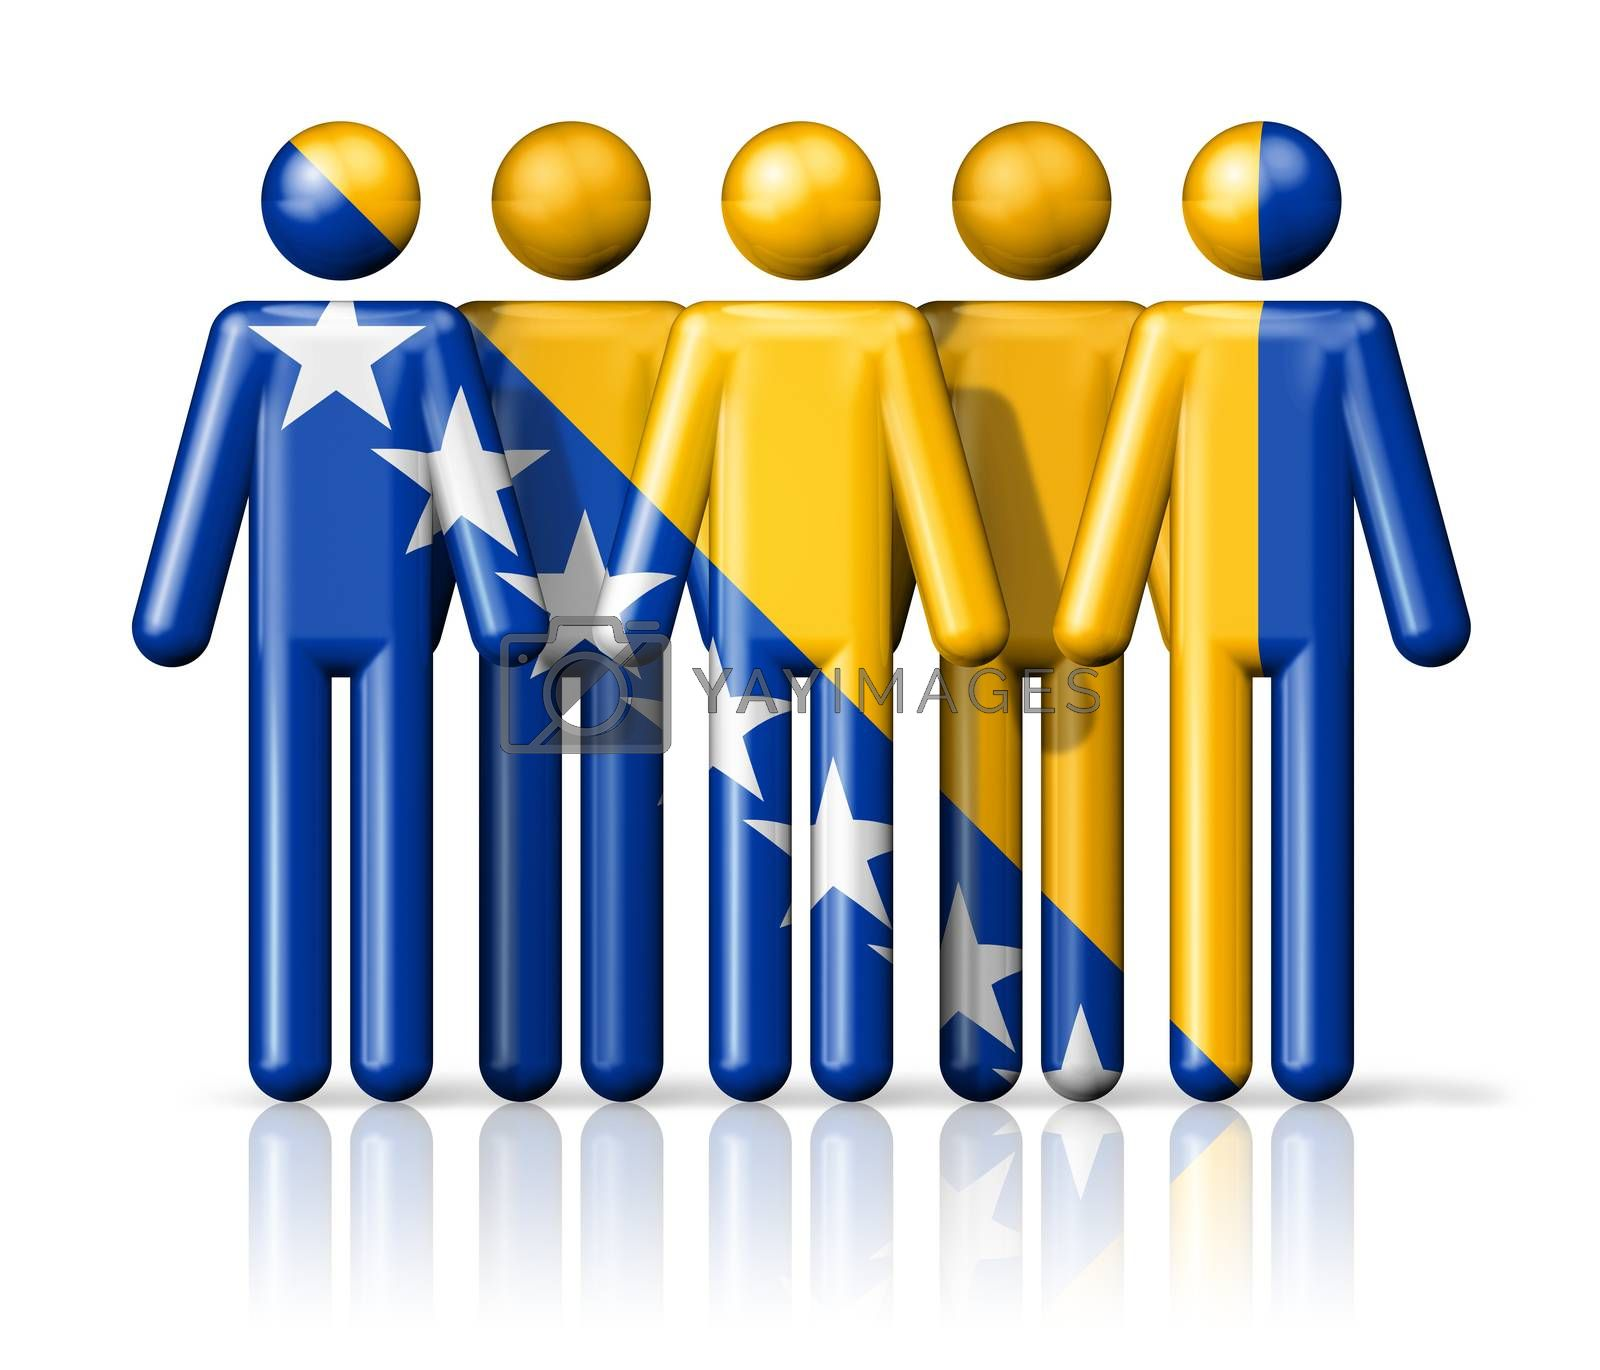 Royalty free image of Flag of Bosnia and Herzegovina on stick figure by daboost